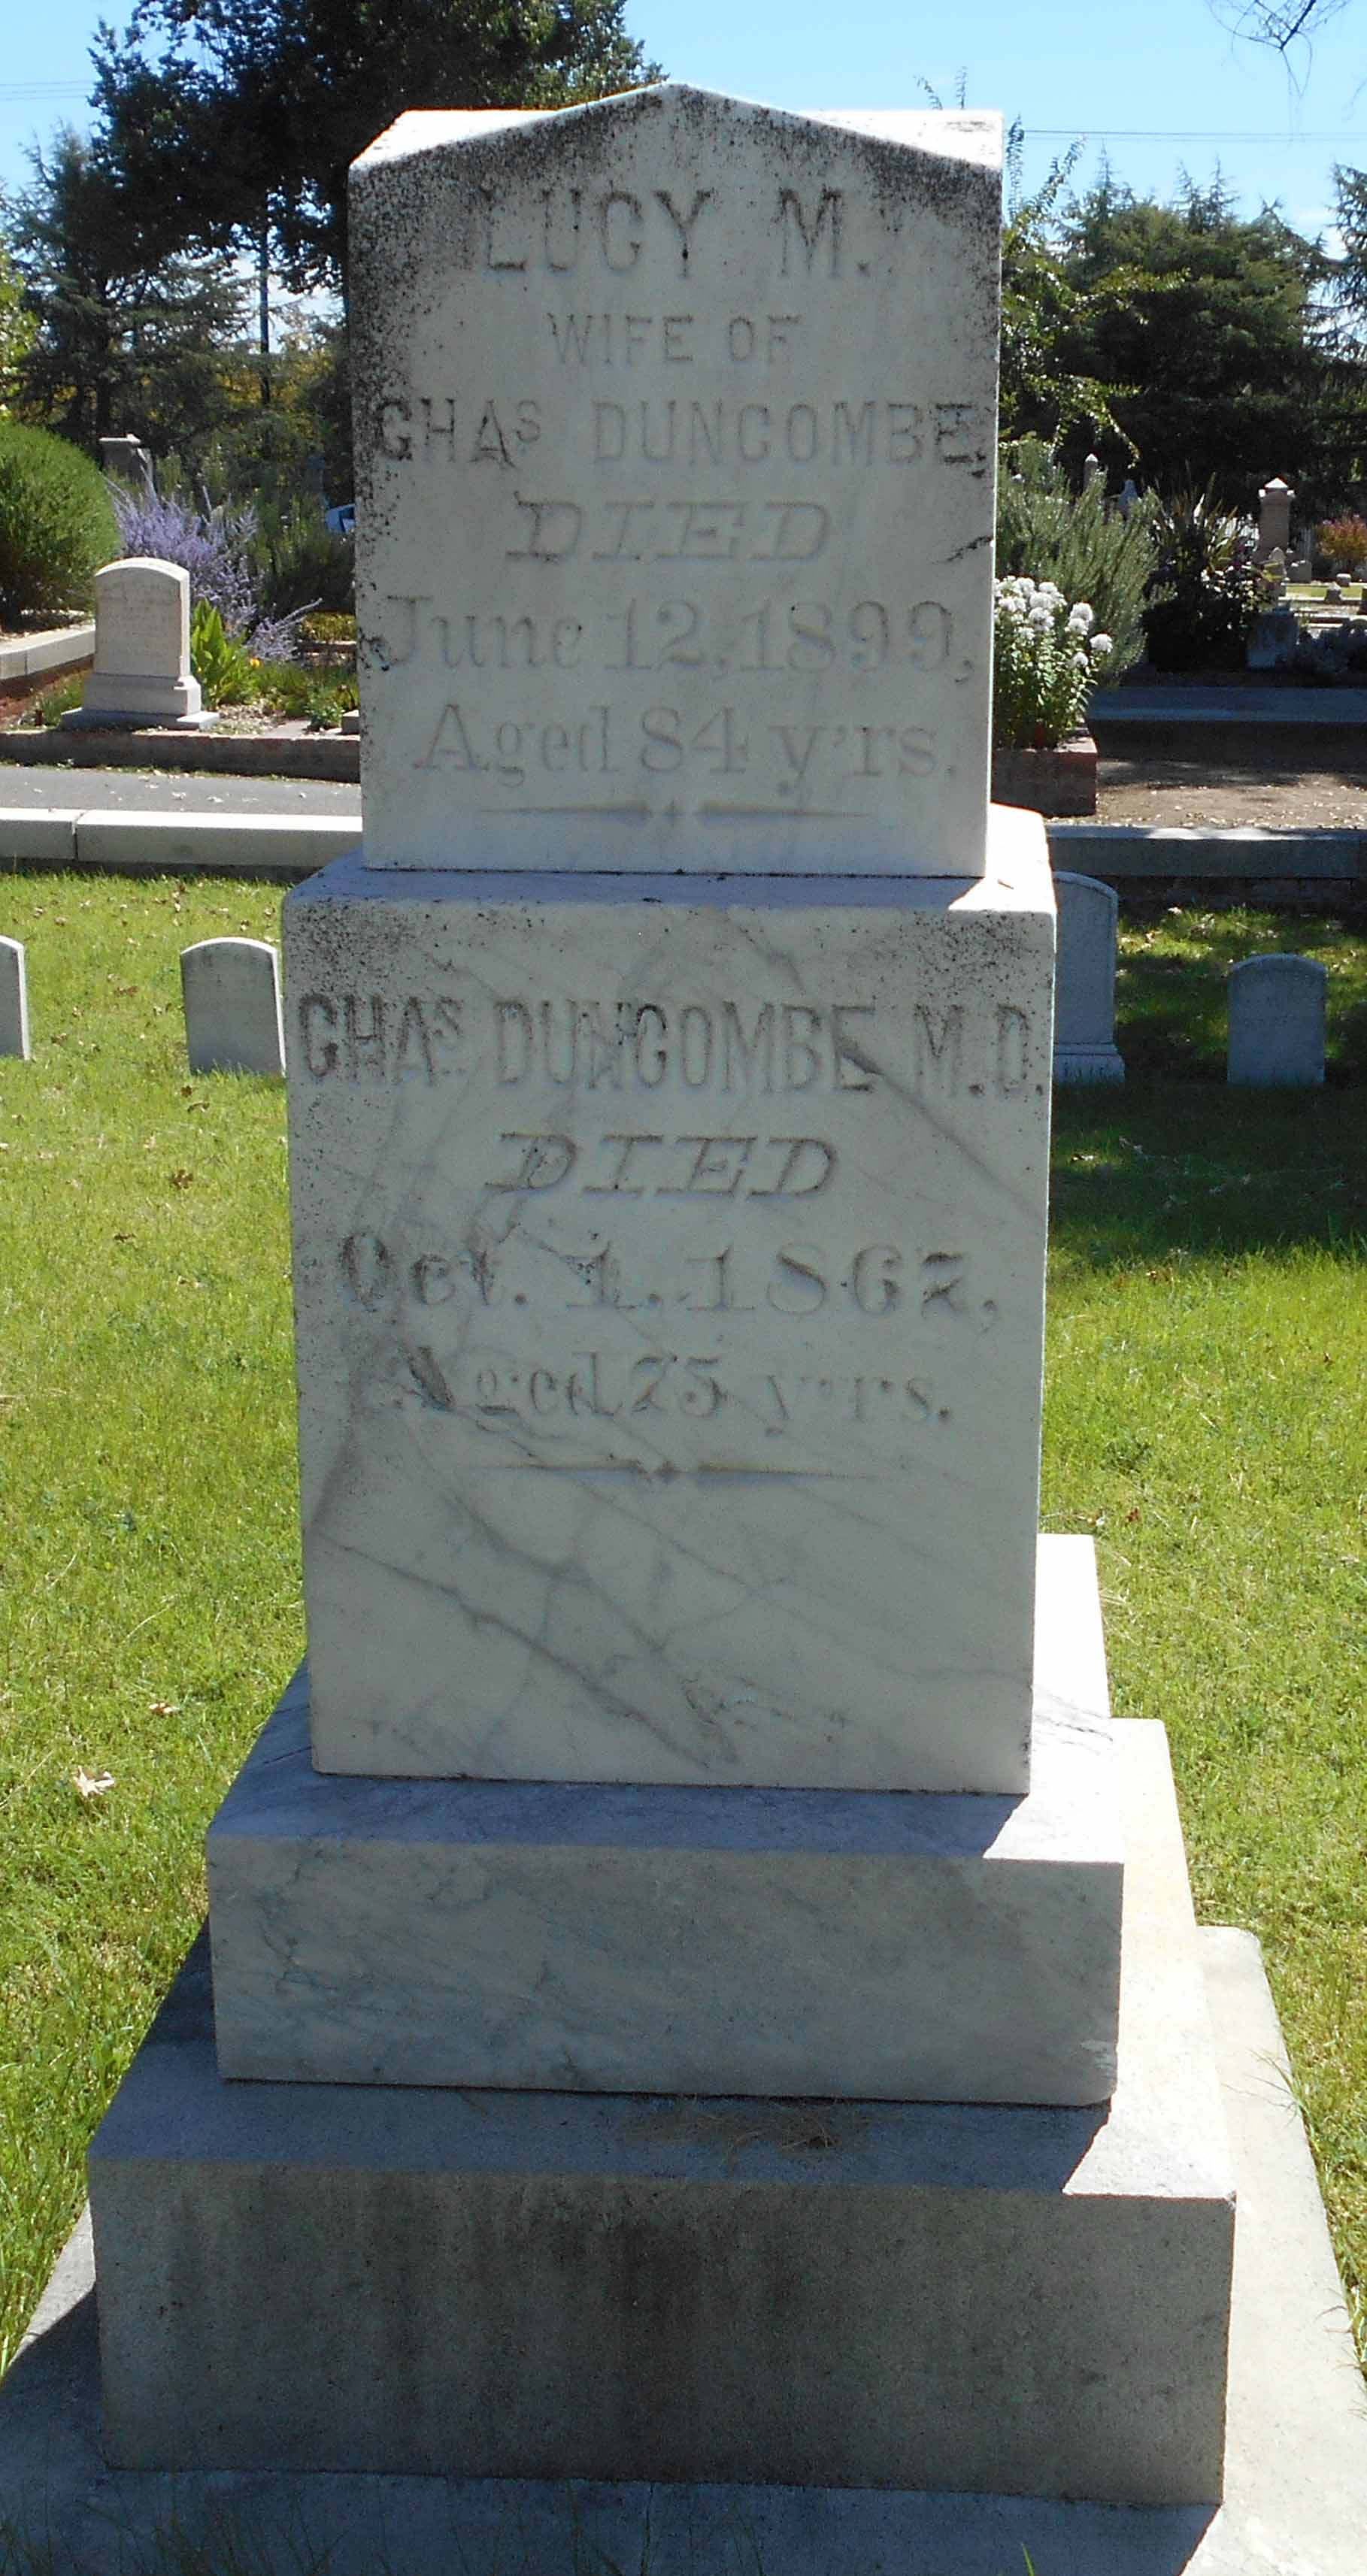 The grave of Charles Duncombe